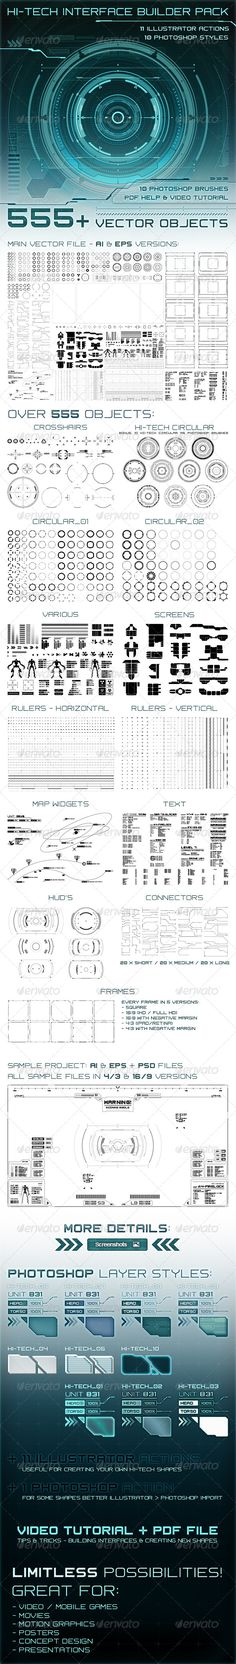 Hi-Tech Interface Builder Pack - Technology Conceptual